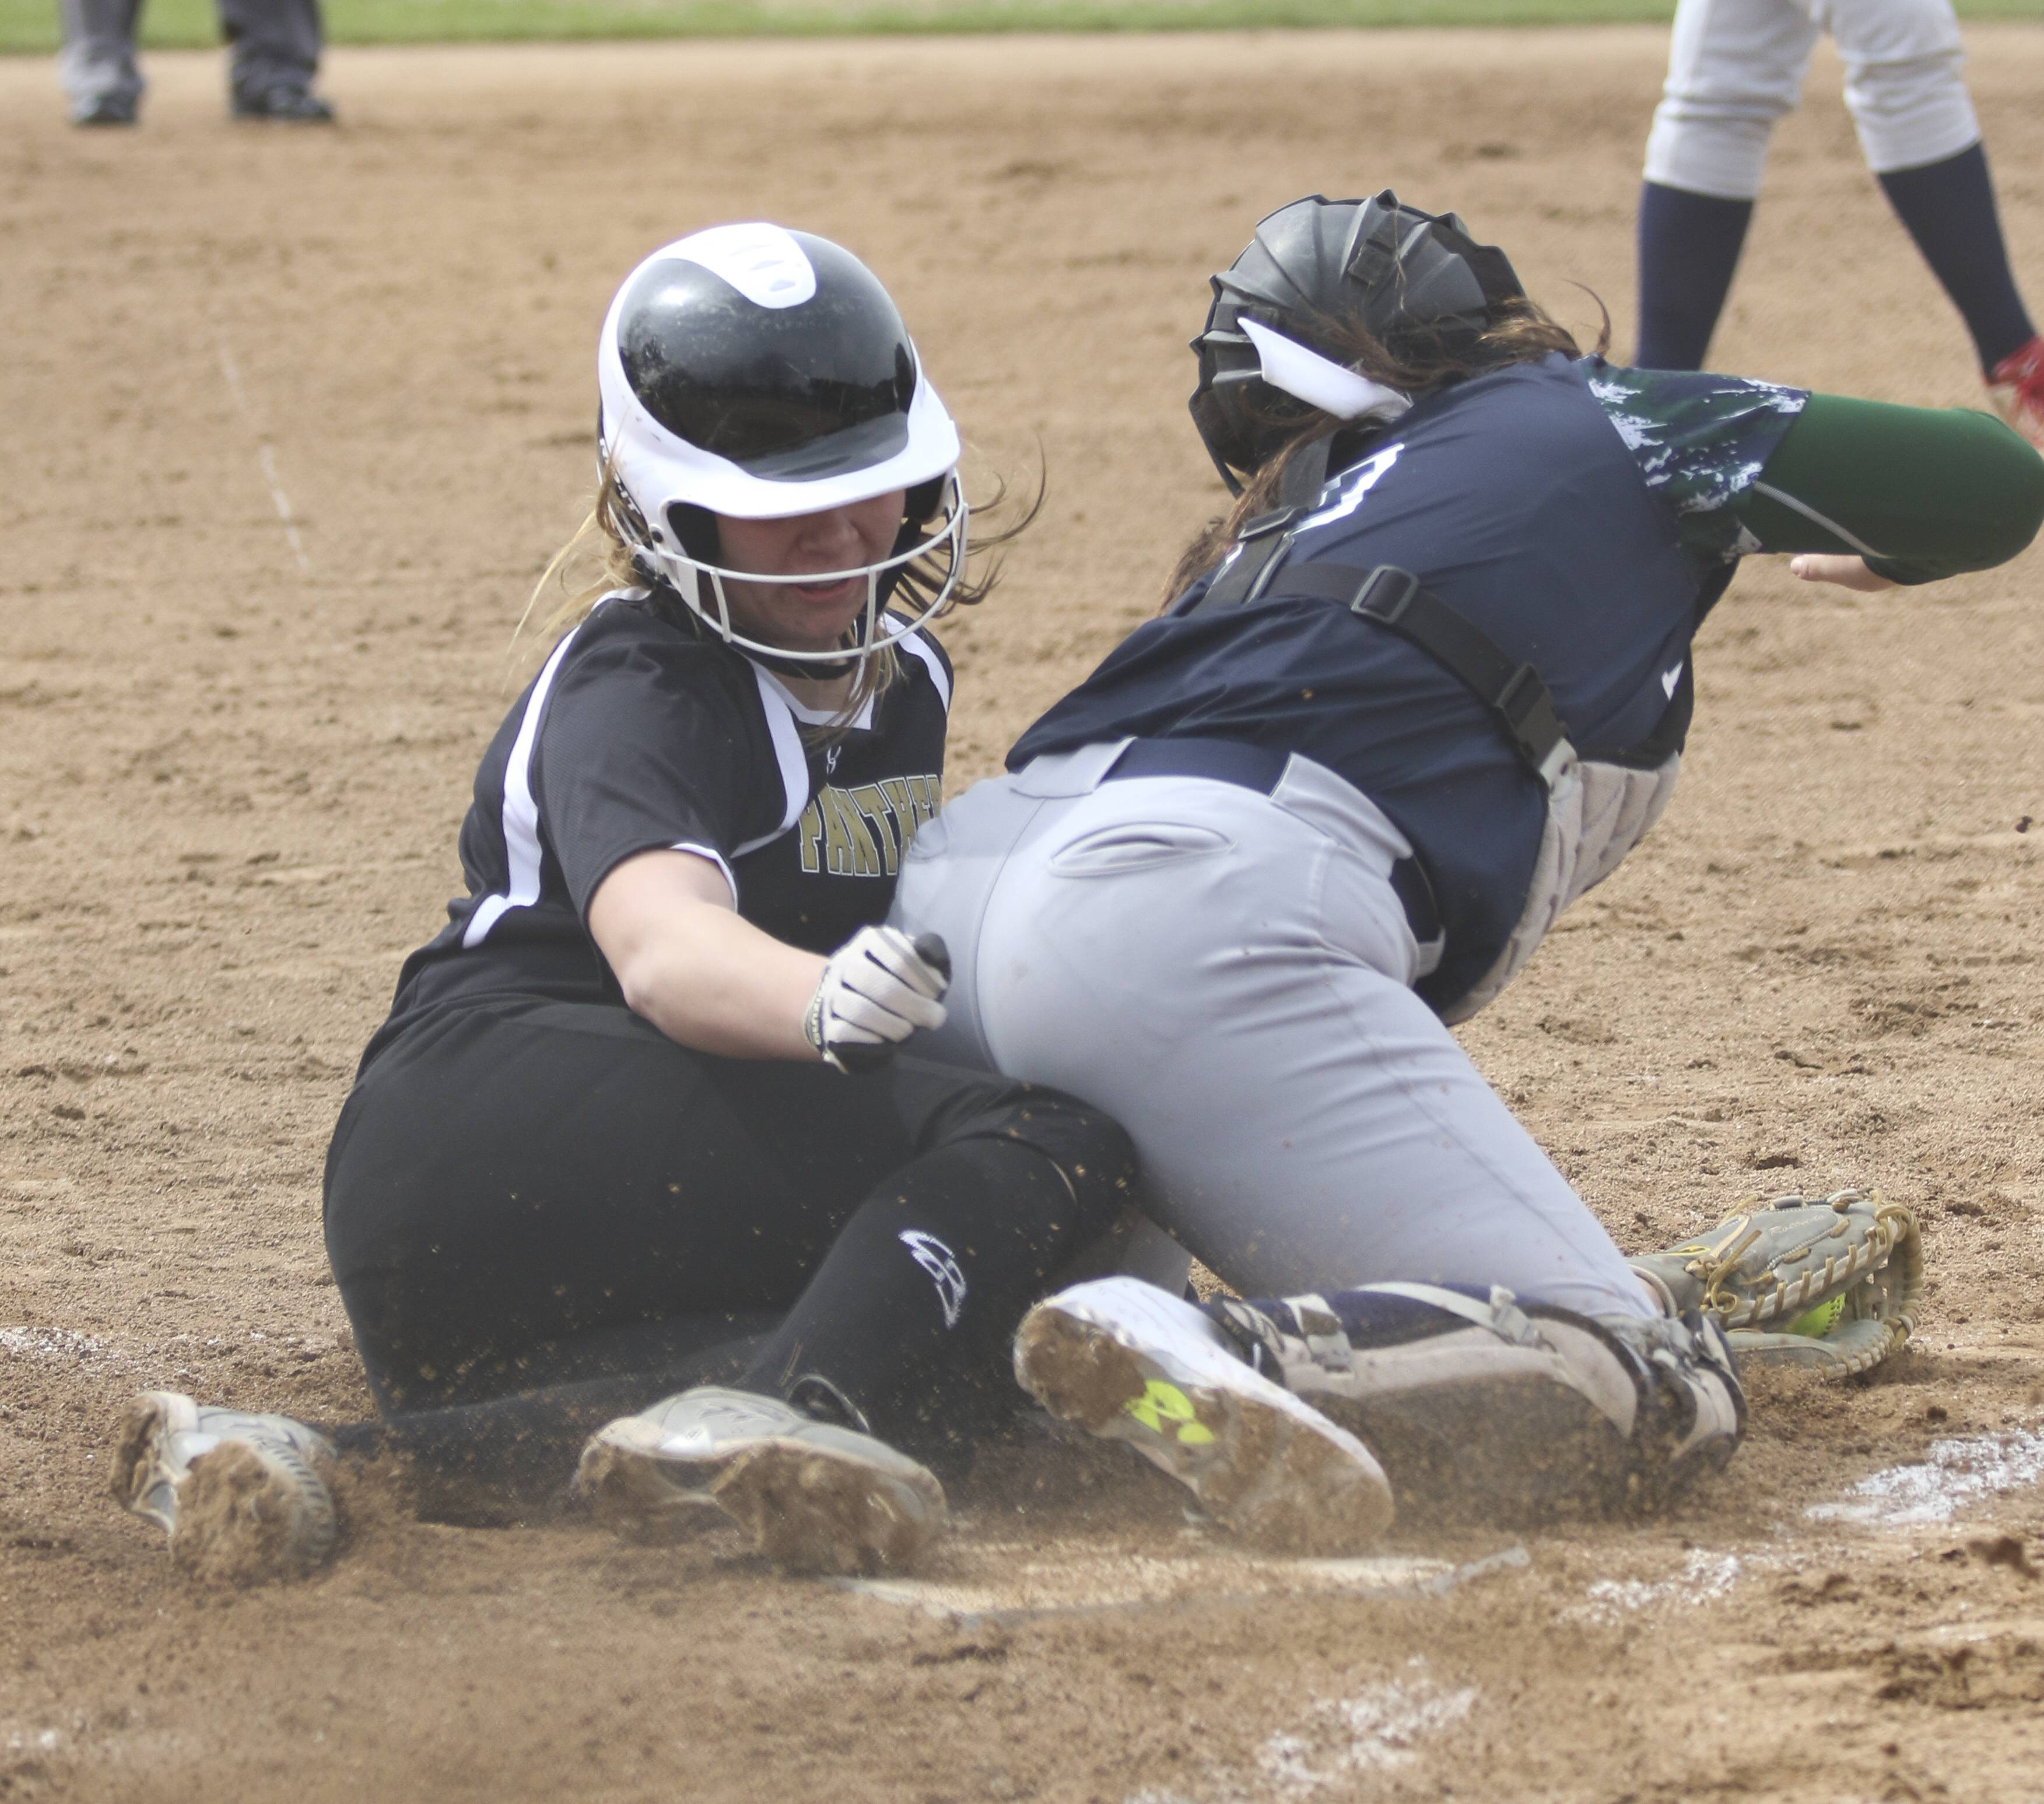 Glenbard North's Kaitlyn Schietler collides with Bartlett catcher Taylor Rotondo at home plate in the first inning during softball on Wednesday in Carol Stream.